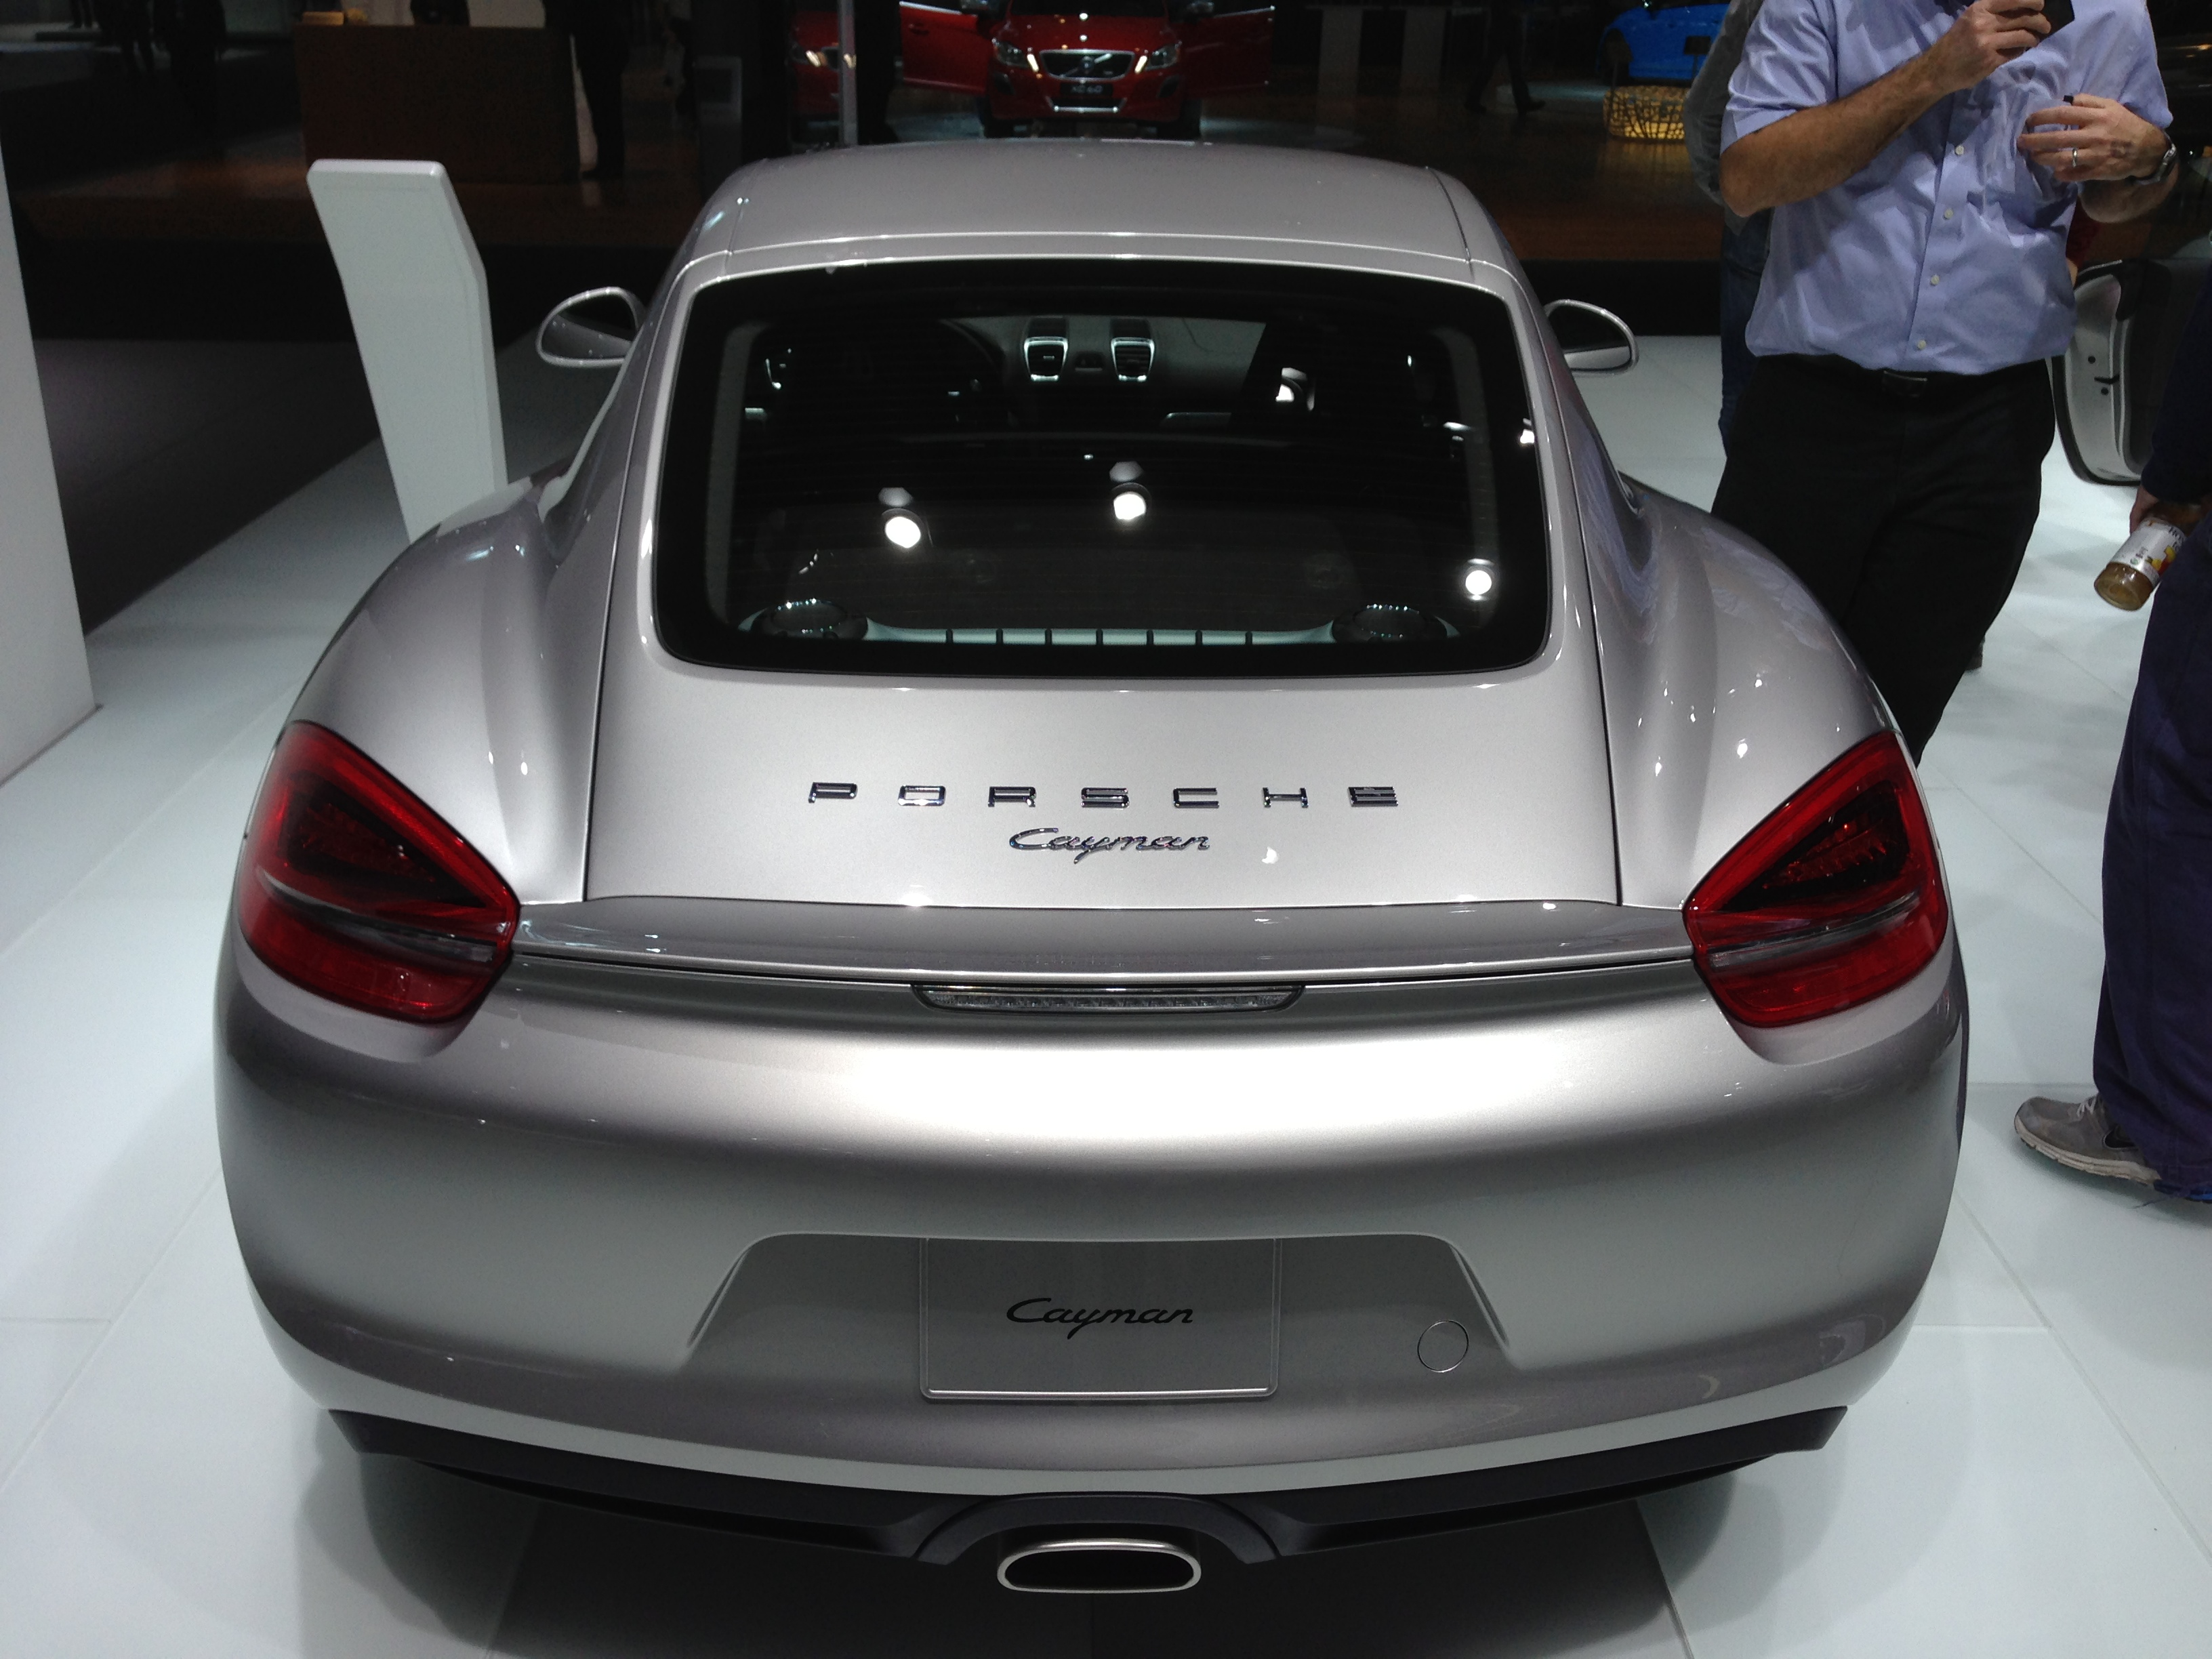 2013 Porsche Cayman at NAIAS 2013 By lotprocars